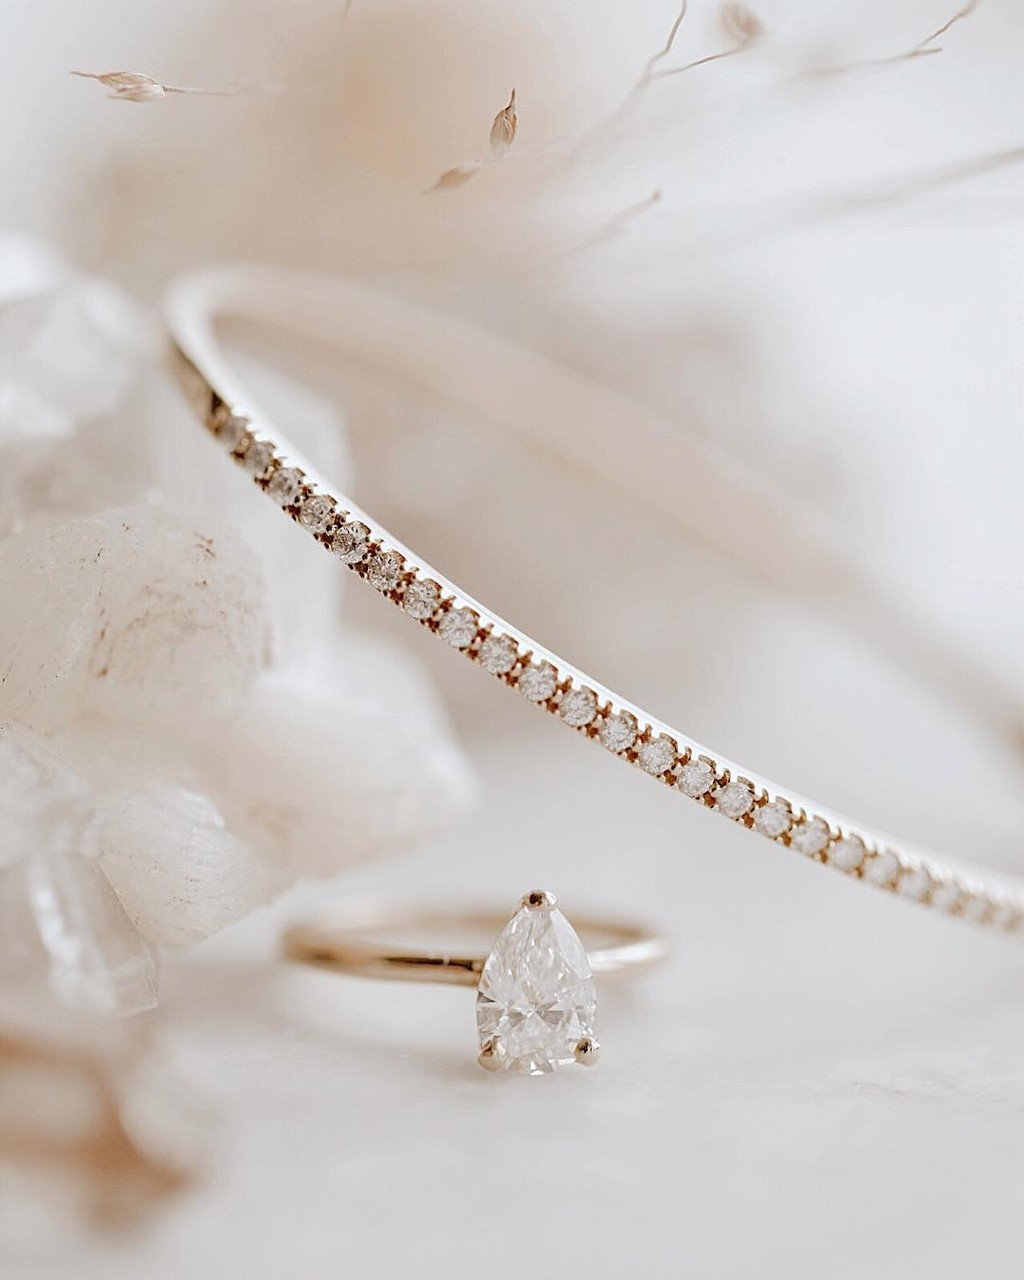 We love how this dainty diamond bracelet compliments our stunning pear solitaire in 14k rose gold. ✨